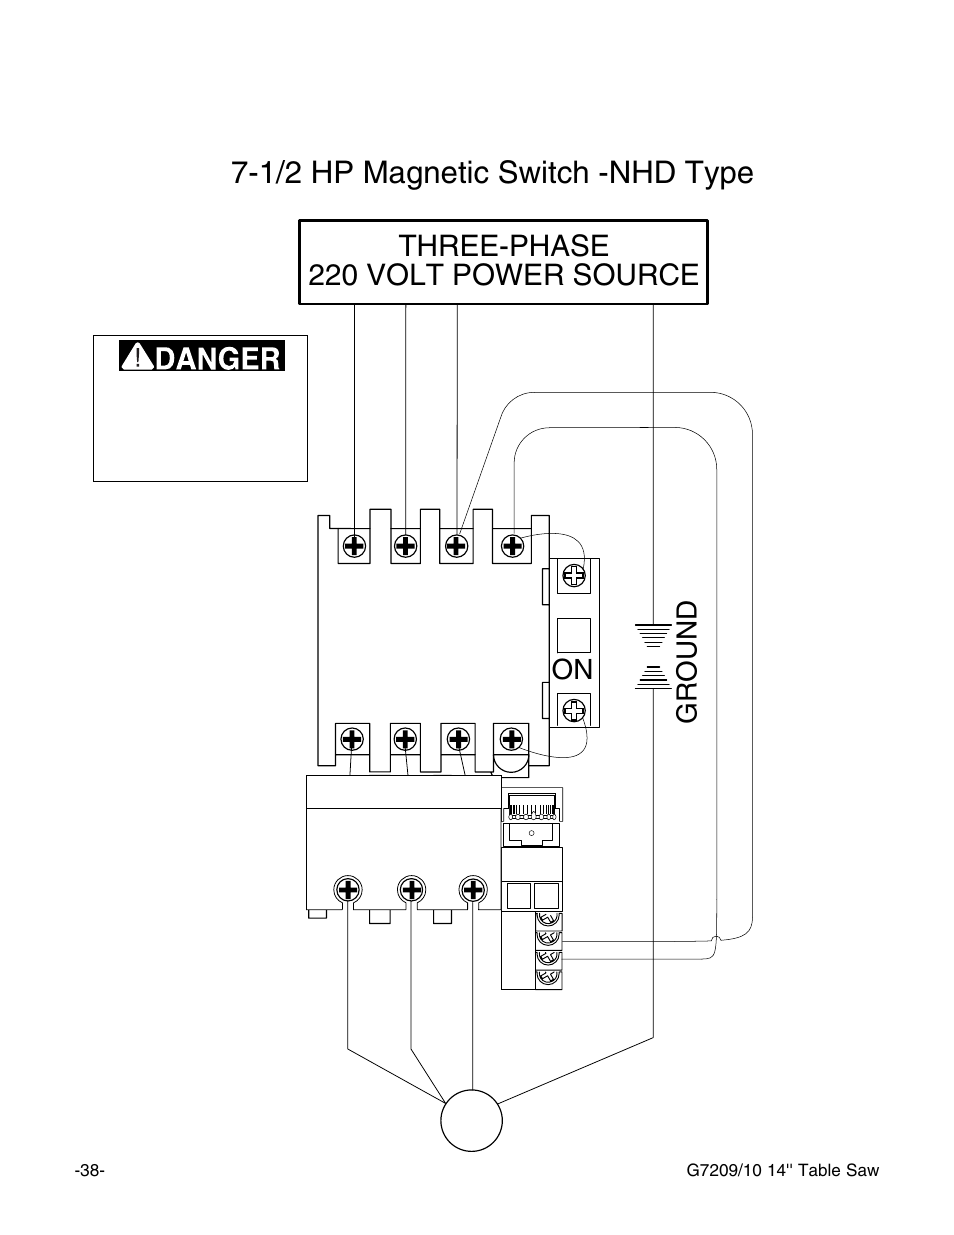 1/2 hp magnetic switch -nhd type, Three-phase 220 volt power source Magnetic Switch Wiring Diagram Volt on